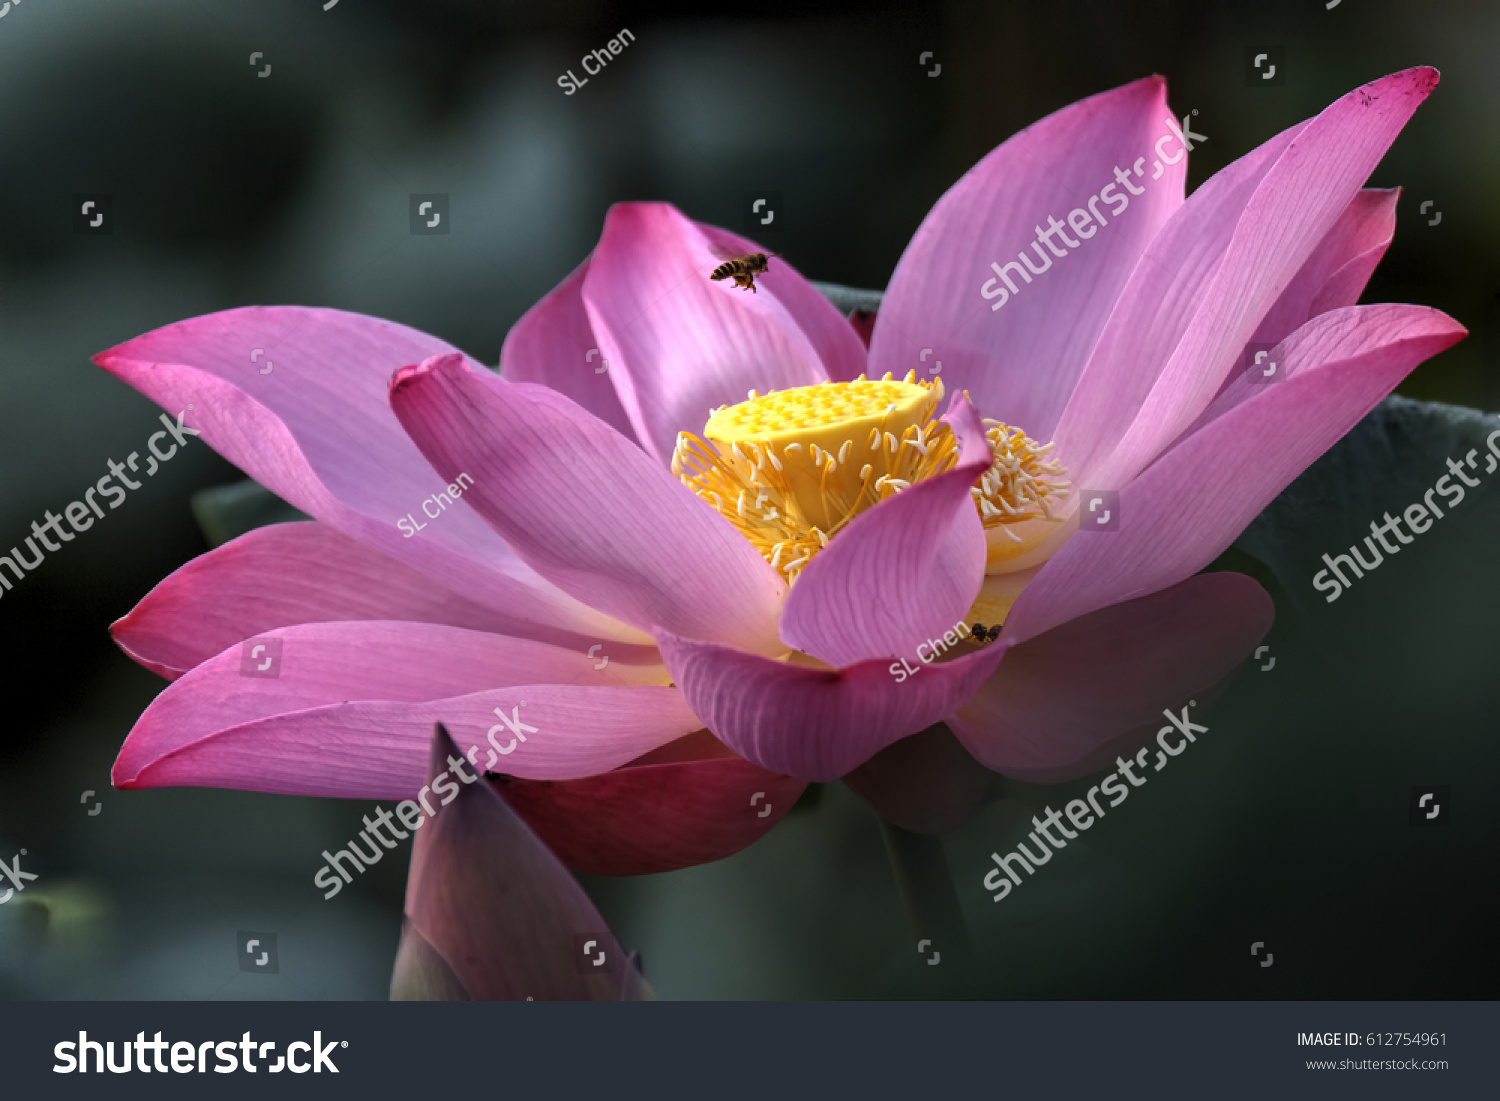 Legend Of The Lotus Flower Image Collections Flower Wallpaper Hd